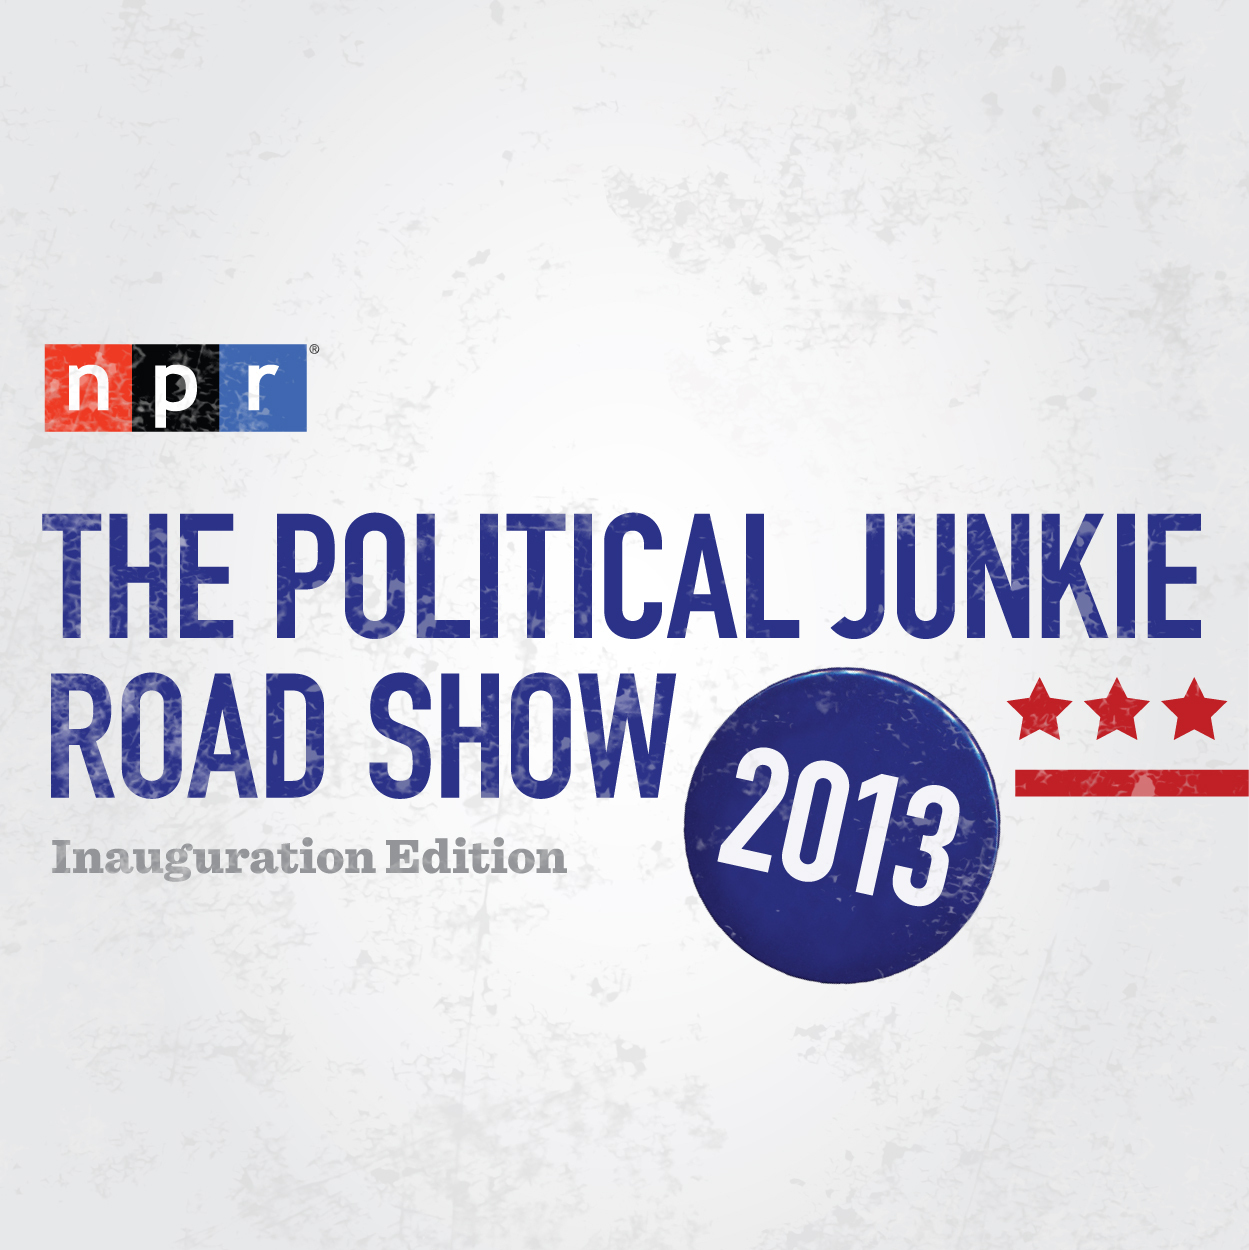 The Political Junkie Road Show, 2013.